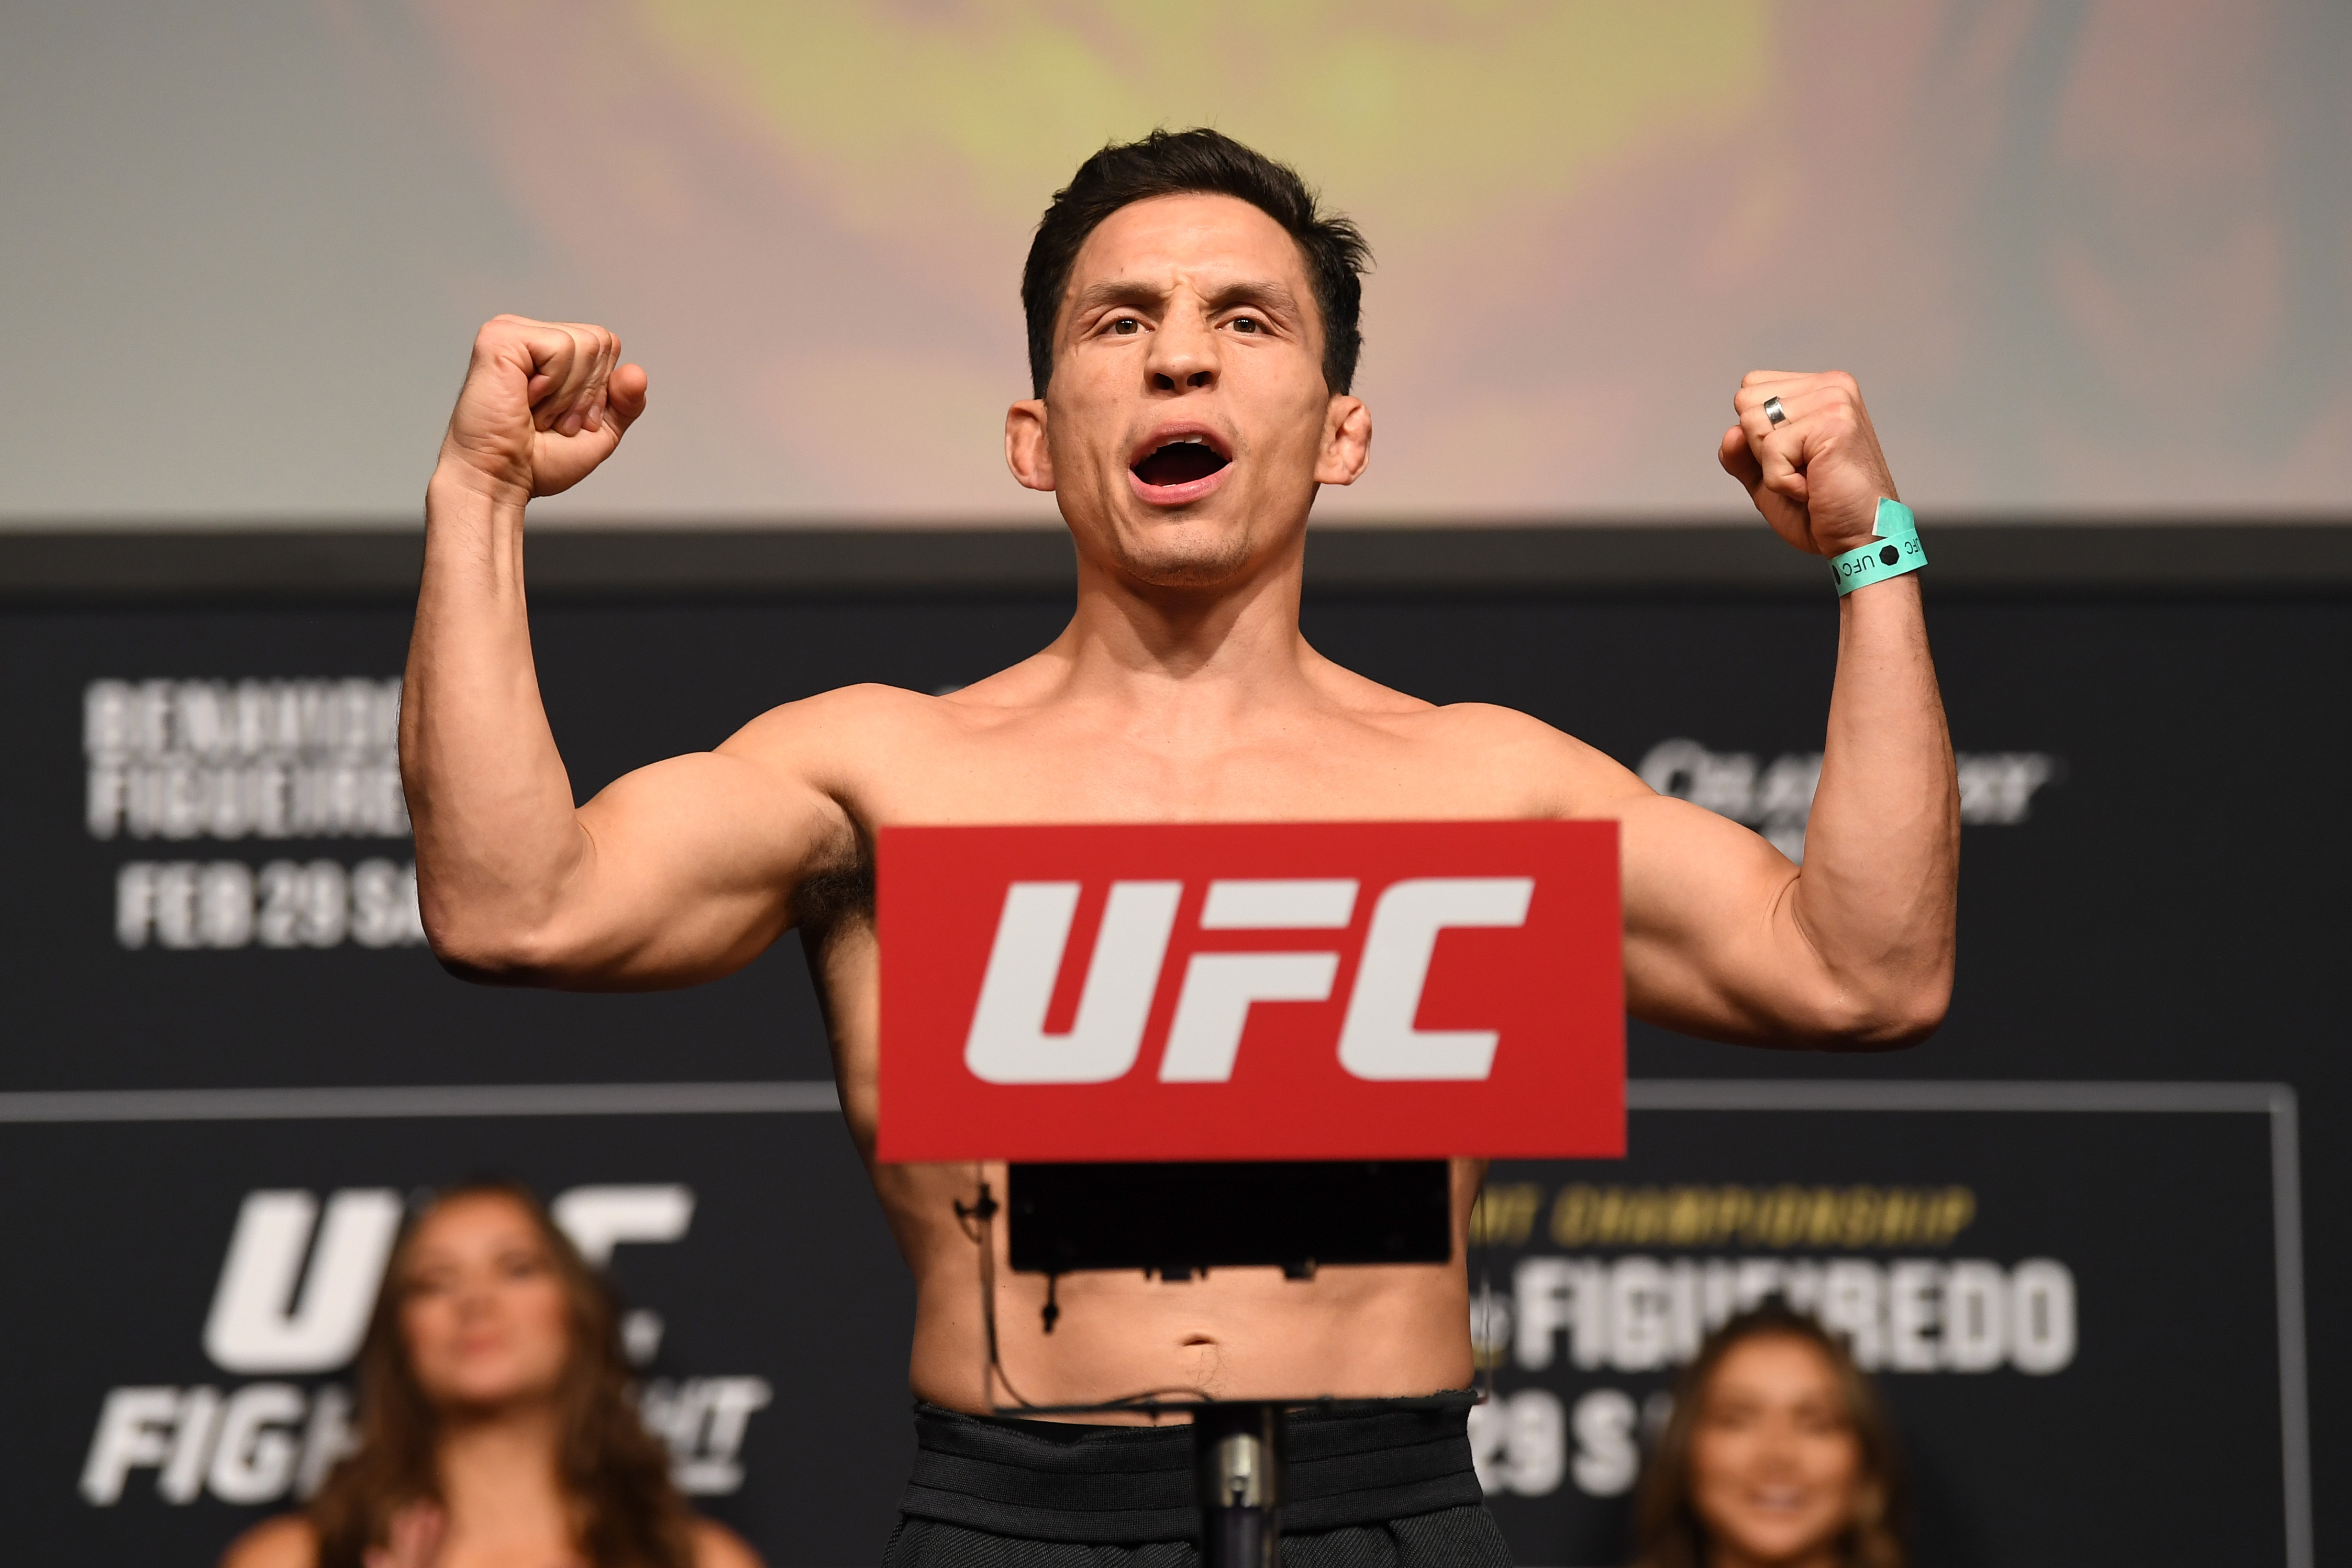 Joseph Benavidez weighing in for a UFC fight